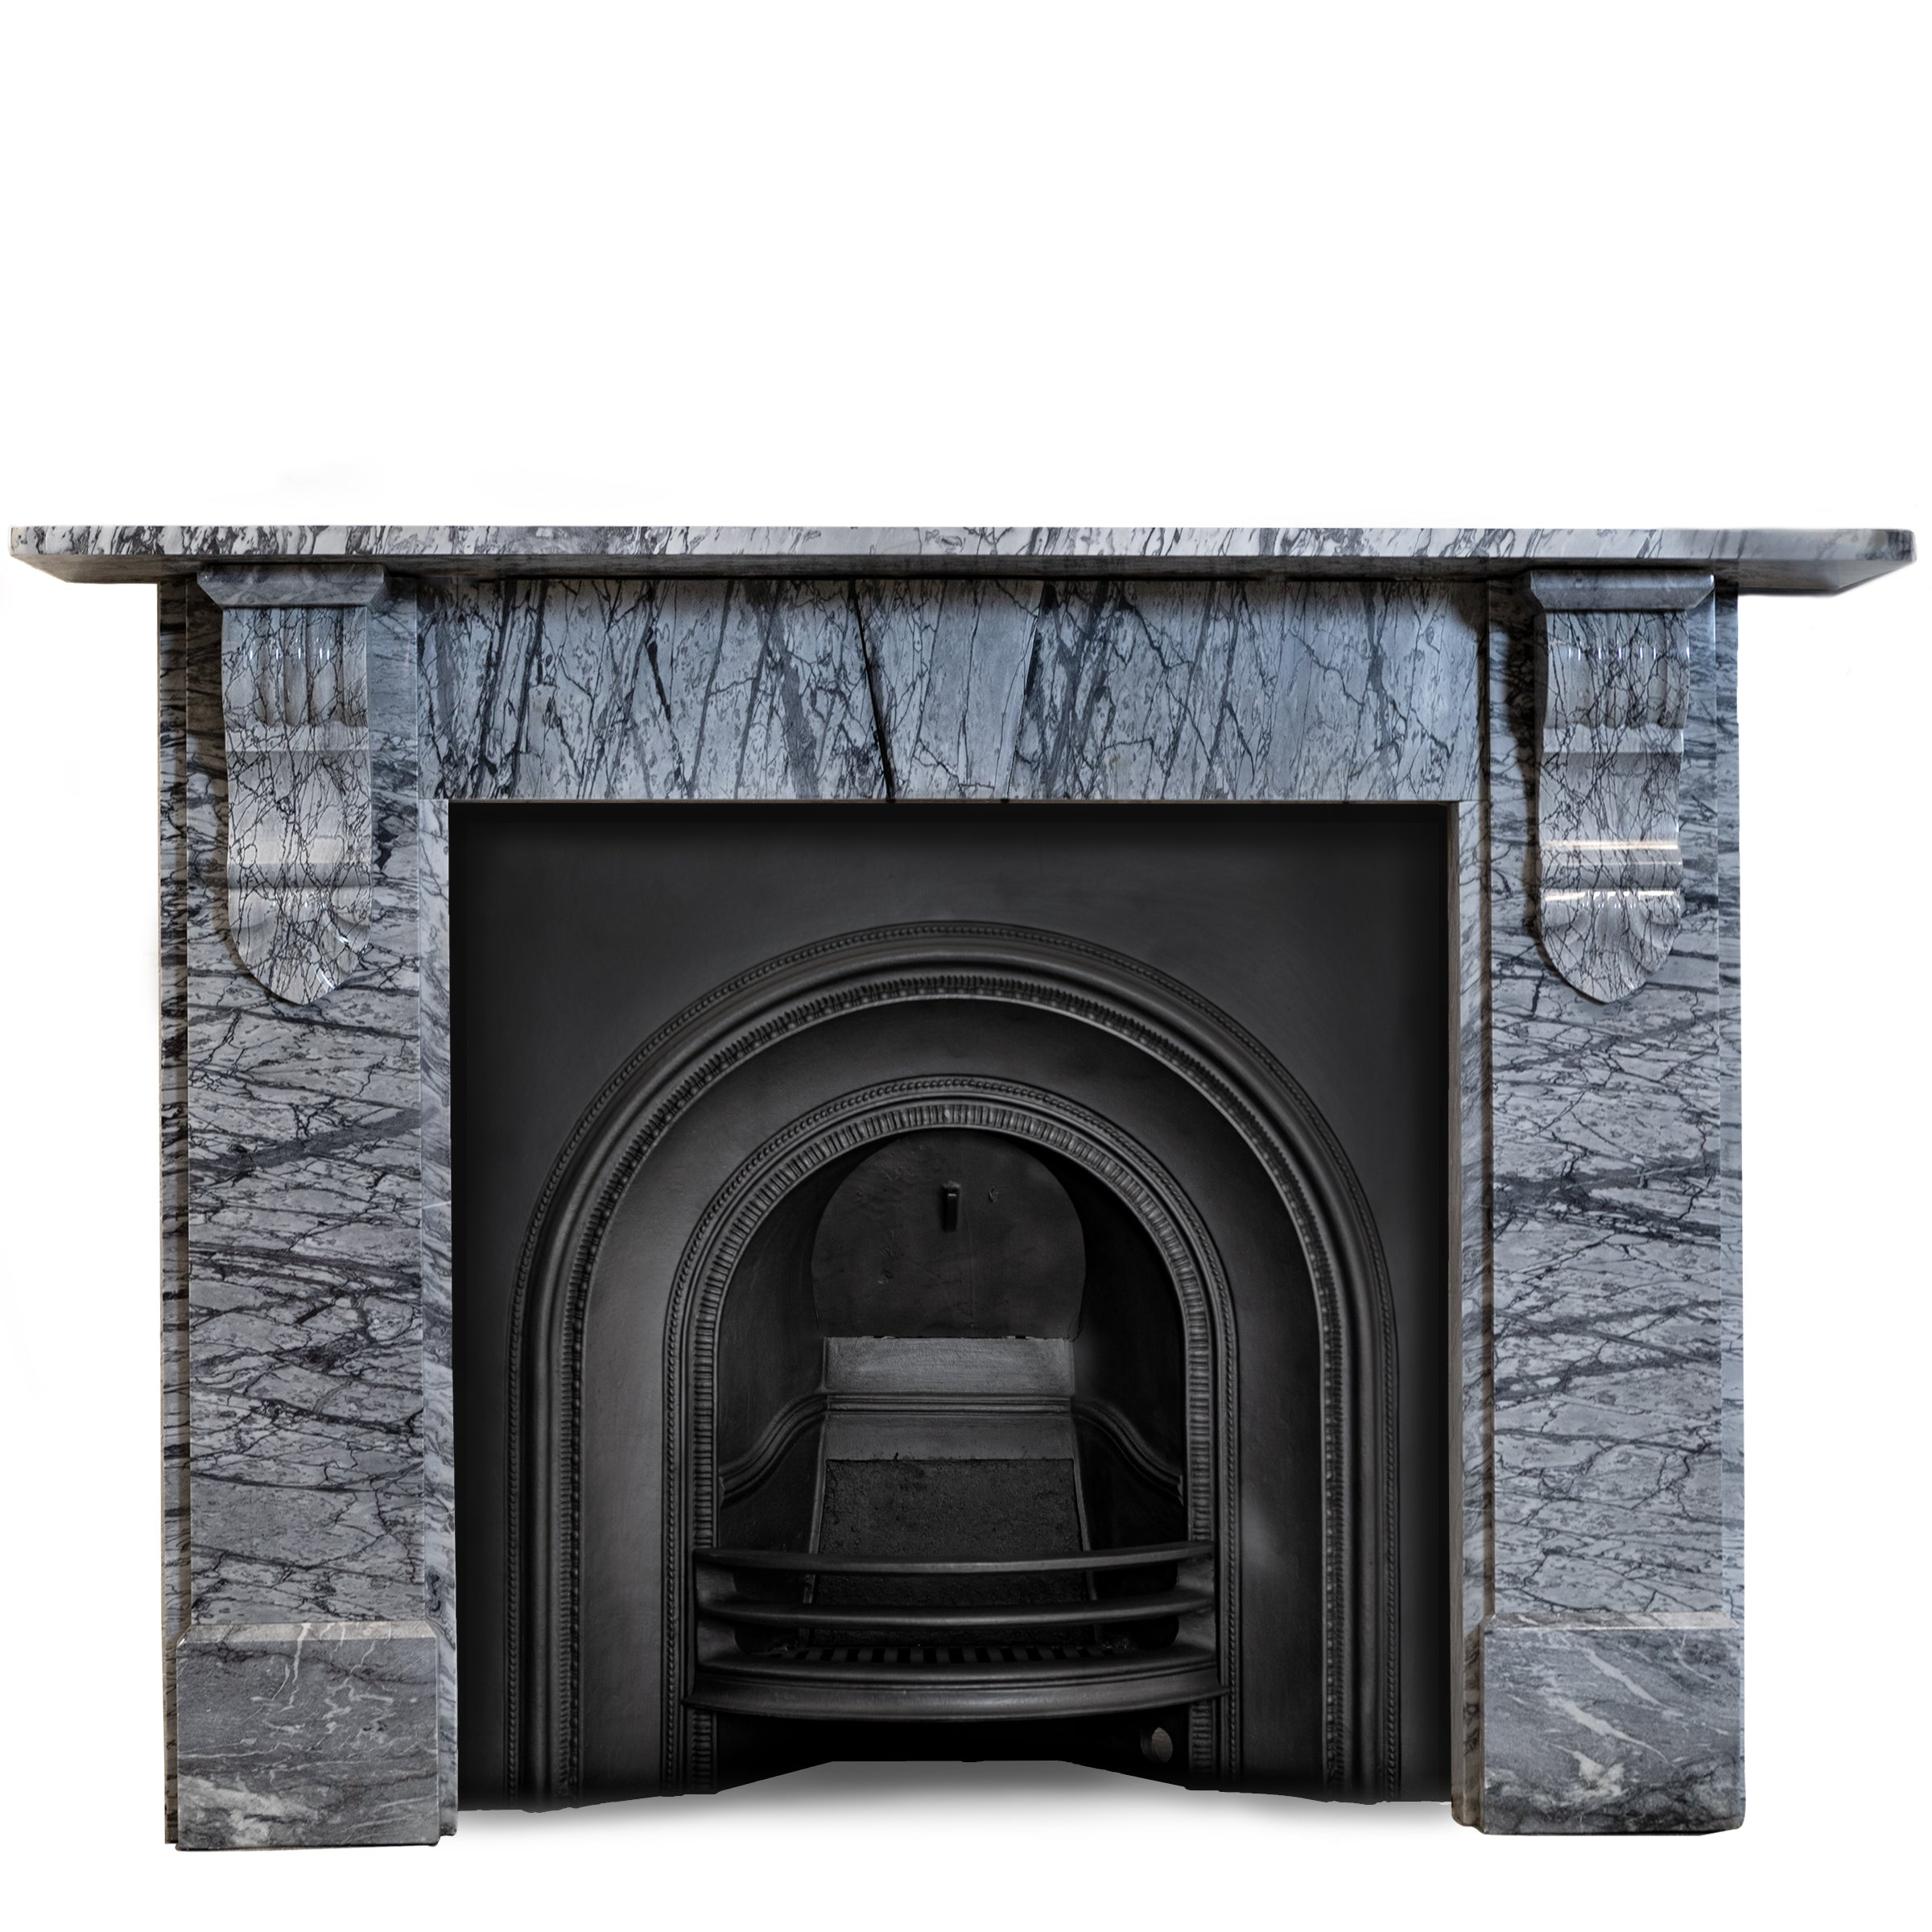 Bardiglio Veined Grey Marble Fireplace Surround with Corbels